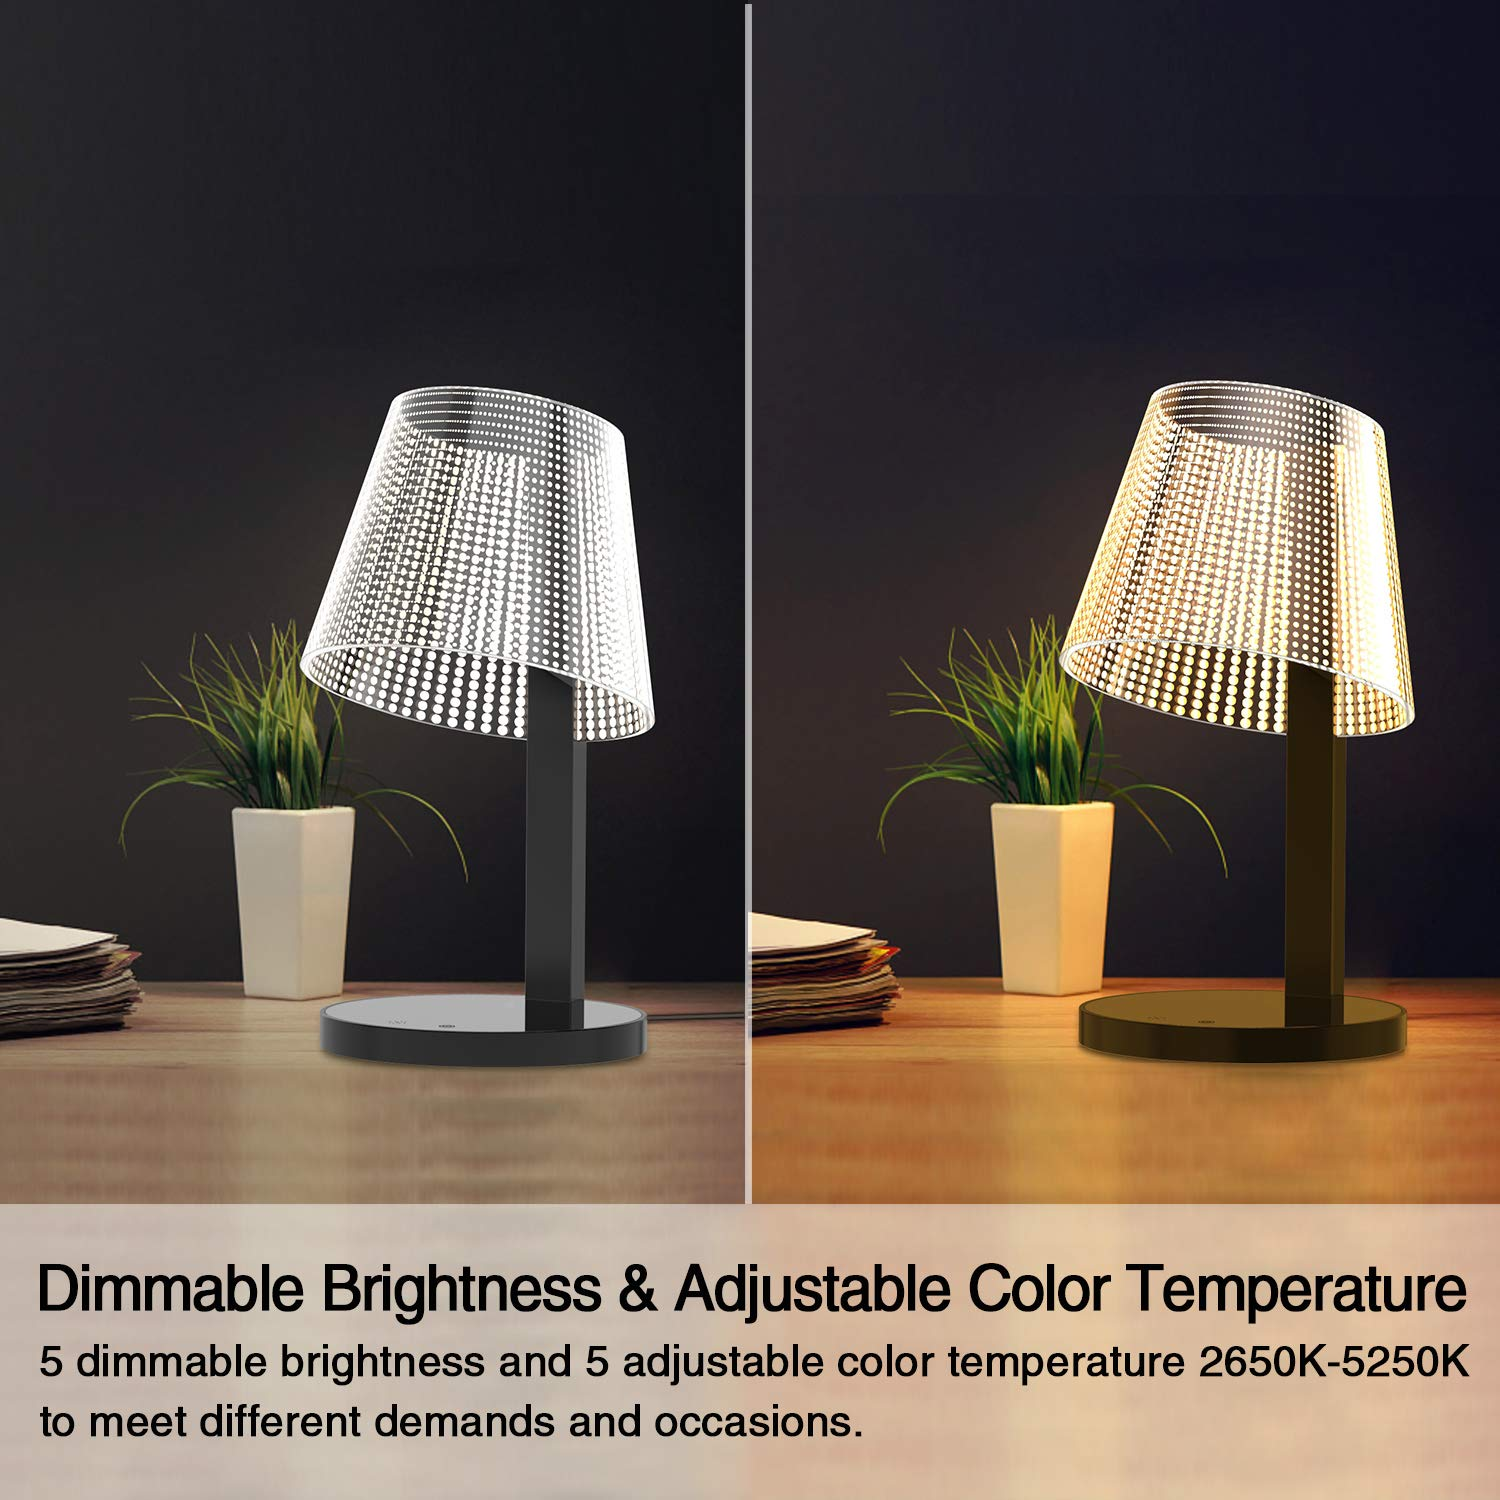 LED Table Lamp, Above Lights 7W Office Dimmable Desk Light with 10W Wireless Charger, Infrared Switch, Hidden Light Source, 5 Colors & Brightness, and USB Charging Port- Reddot Design Award by Above Lights (Image #5)